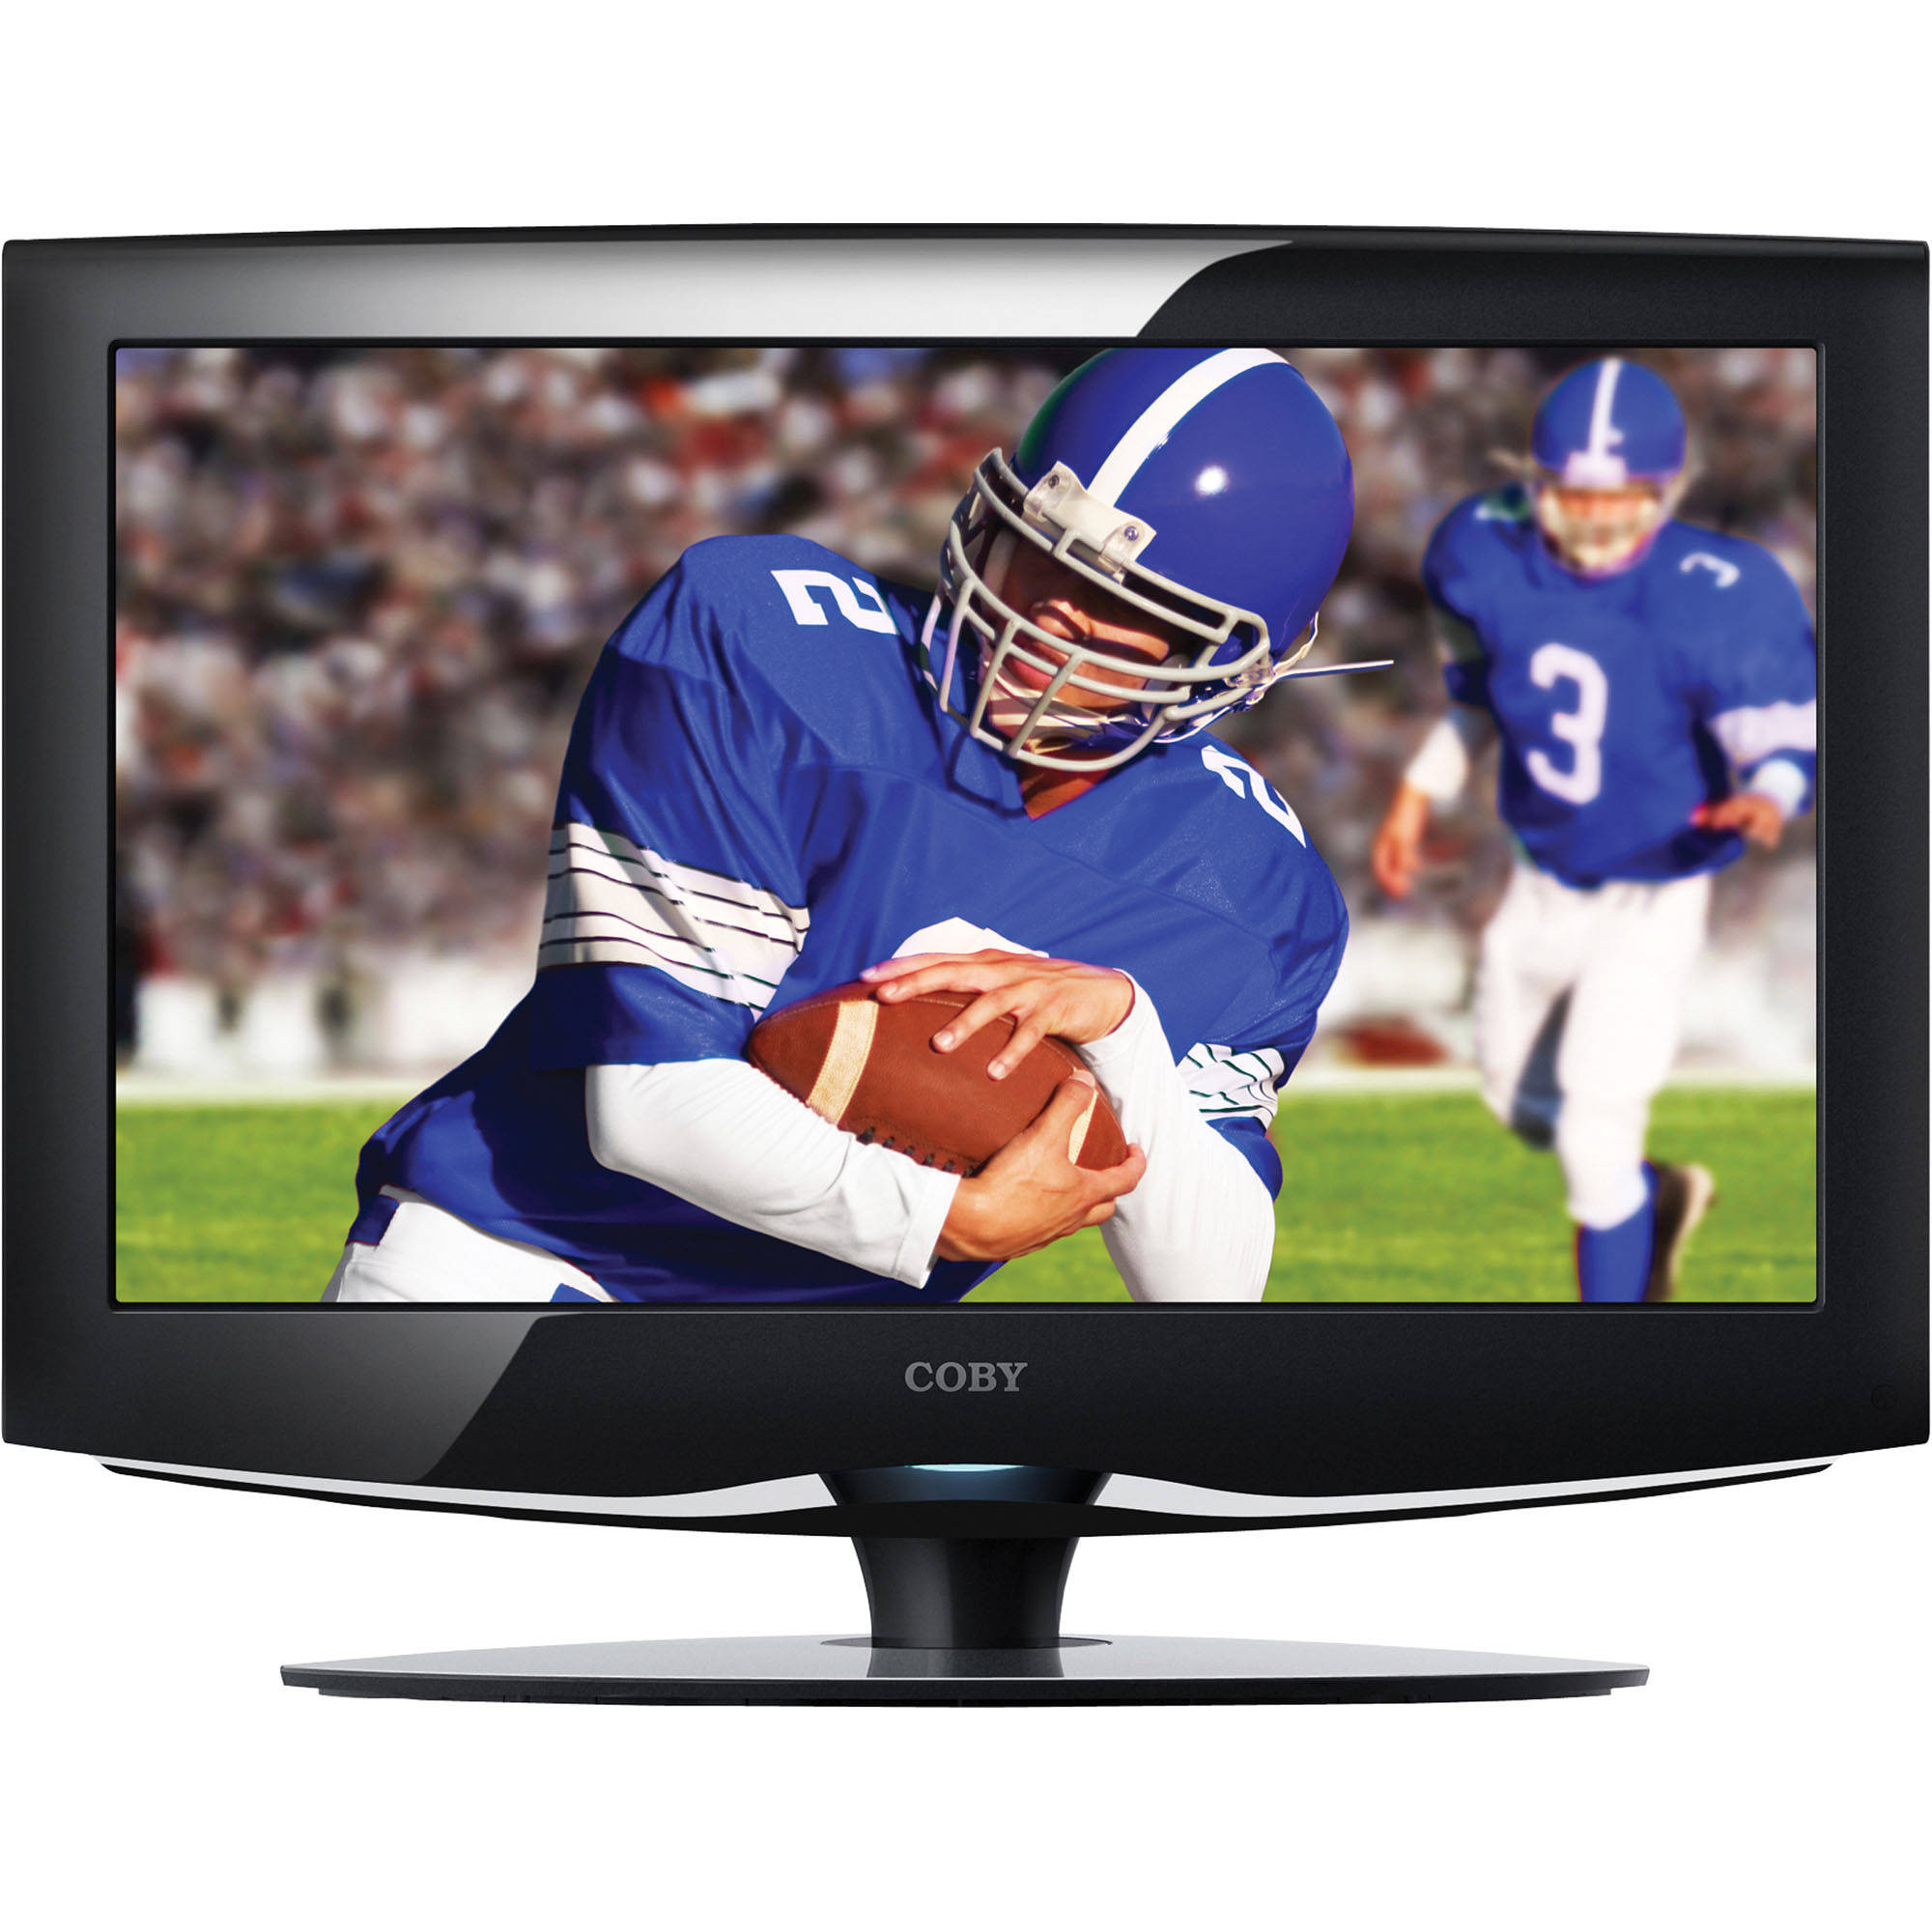 coby 32 inch tv manual